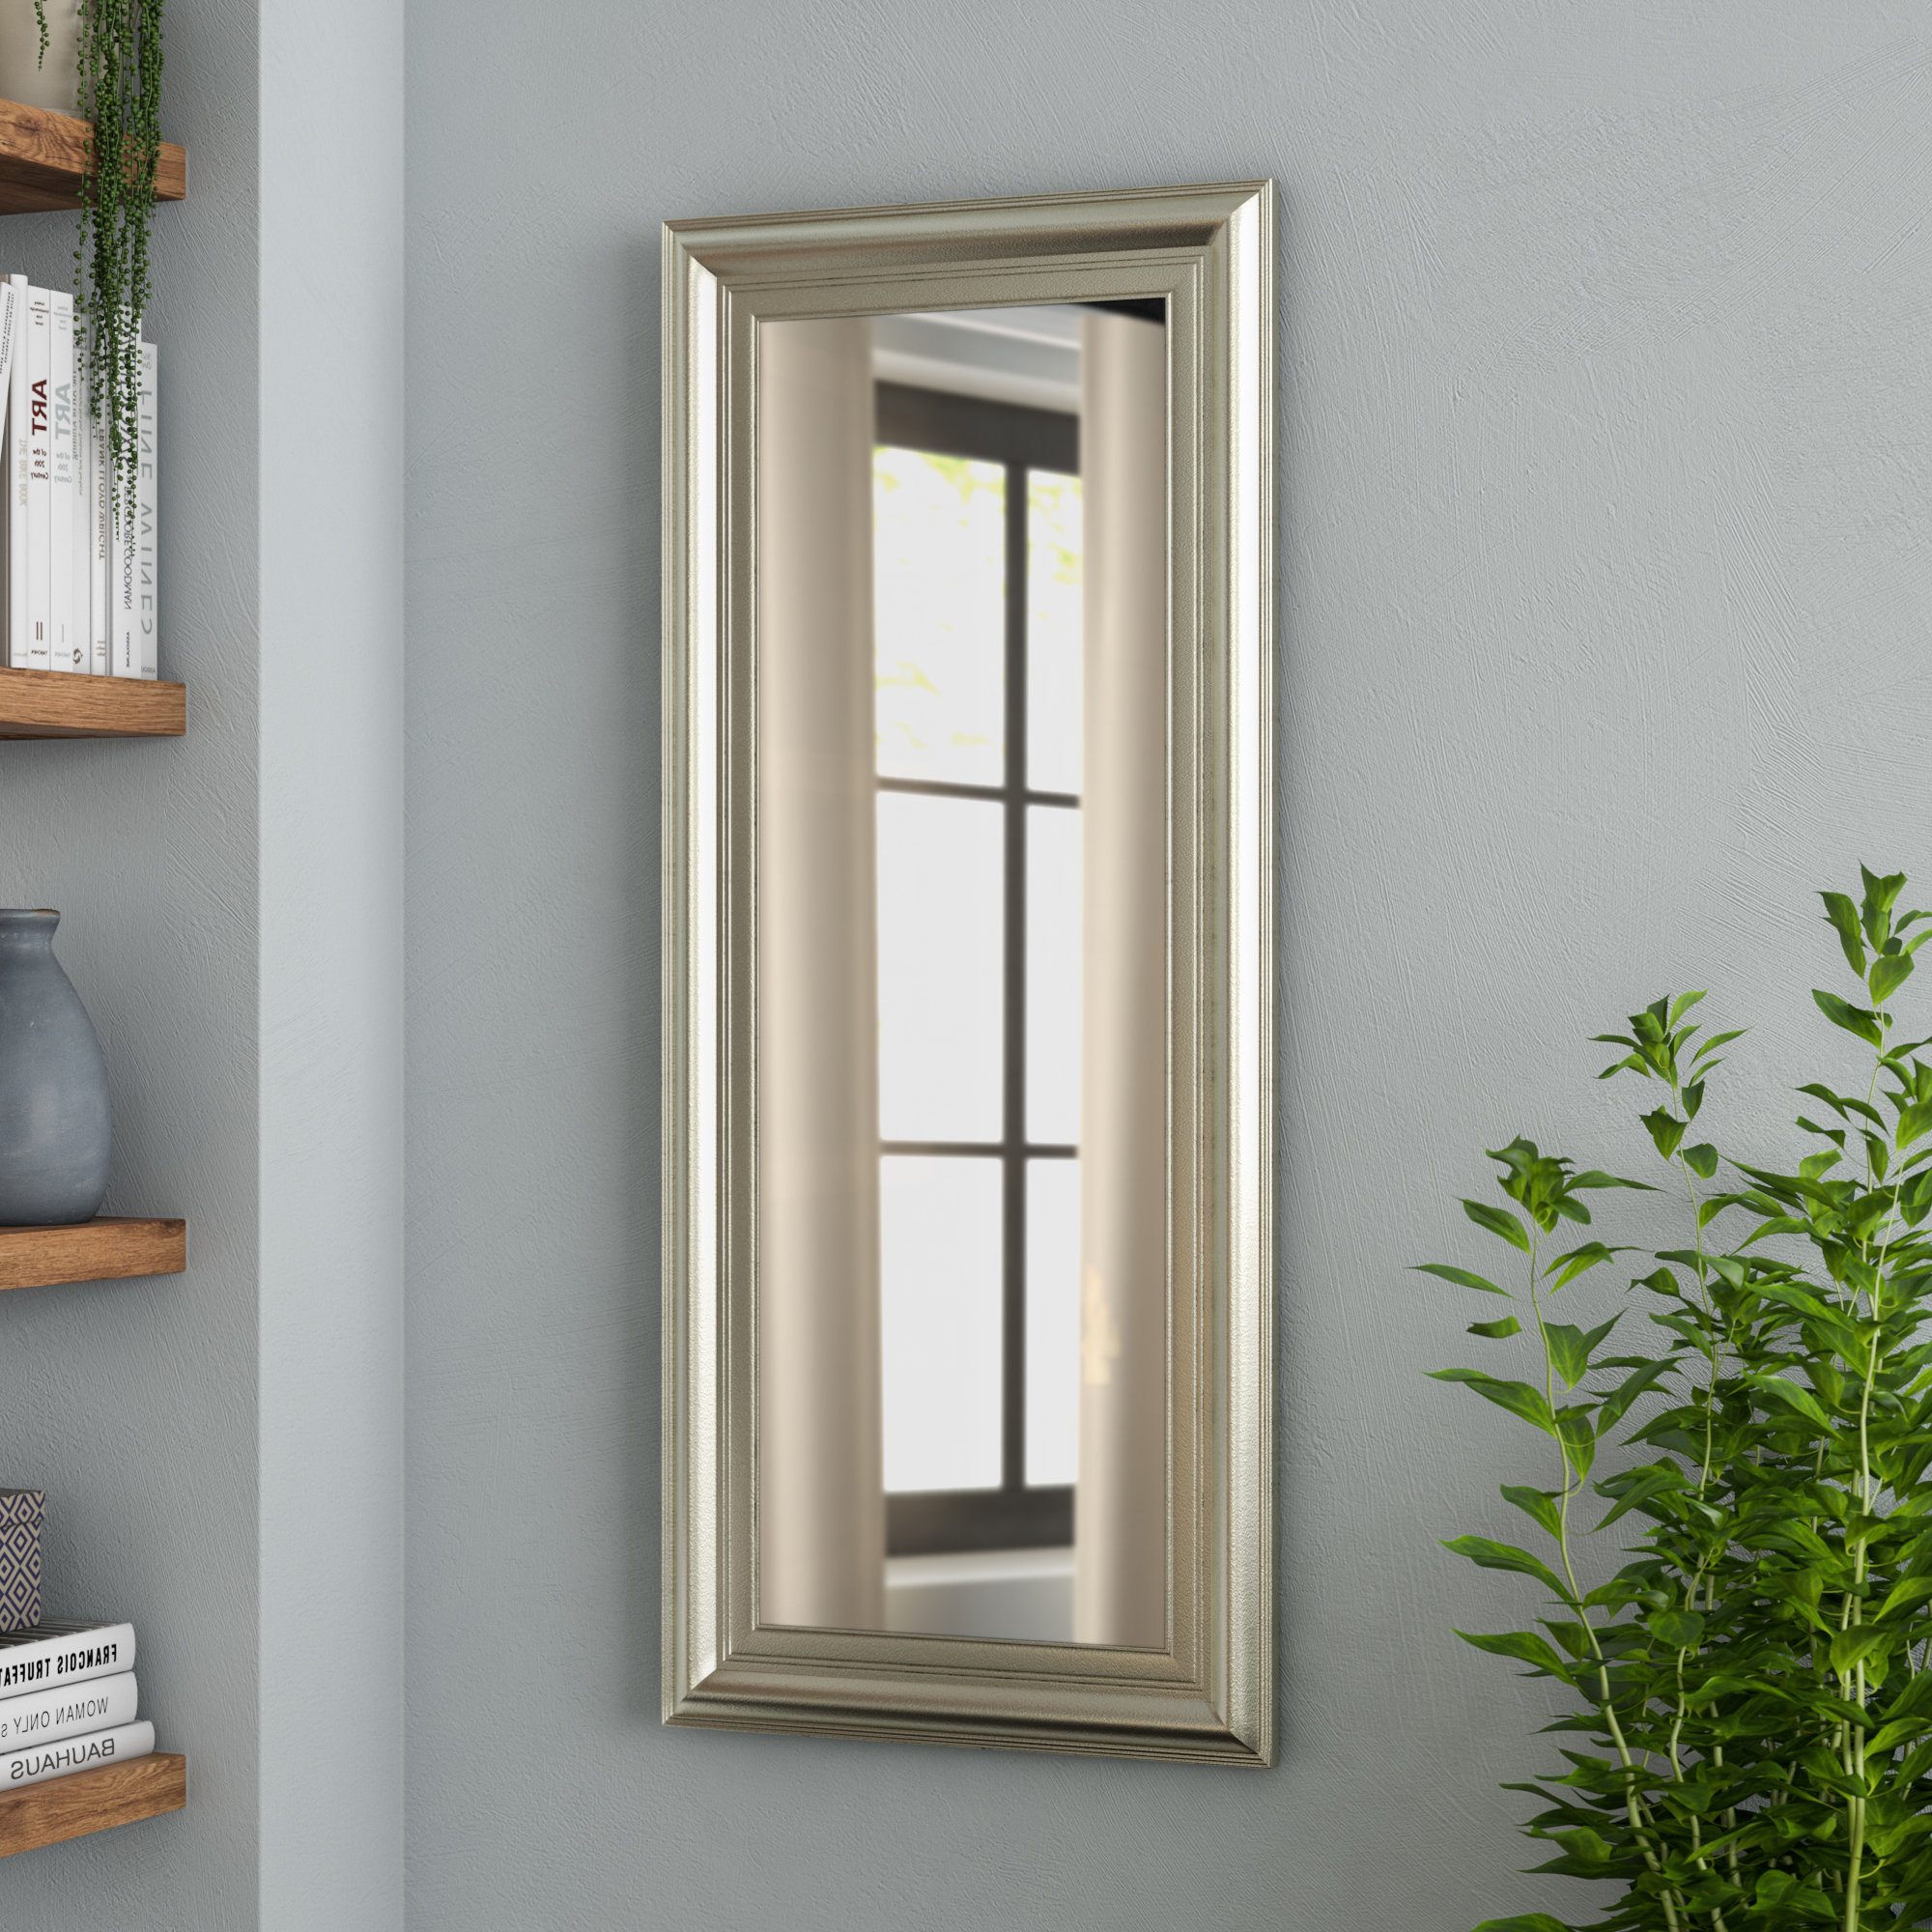 Current Dedrick Decorative Framed Modern And Contemporary Wall Mirror Inside Decorative Framed Wall Mirrors (View 8 of 20)